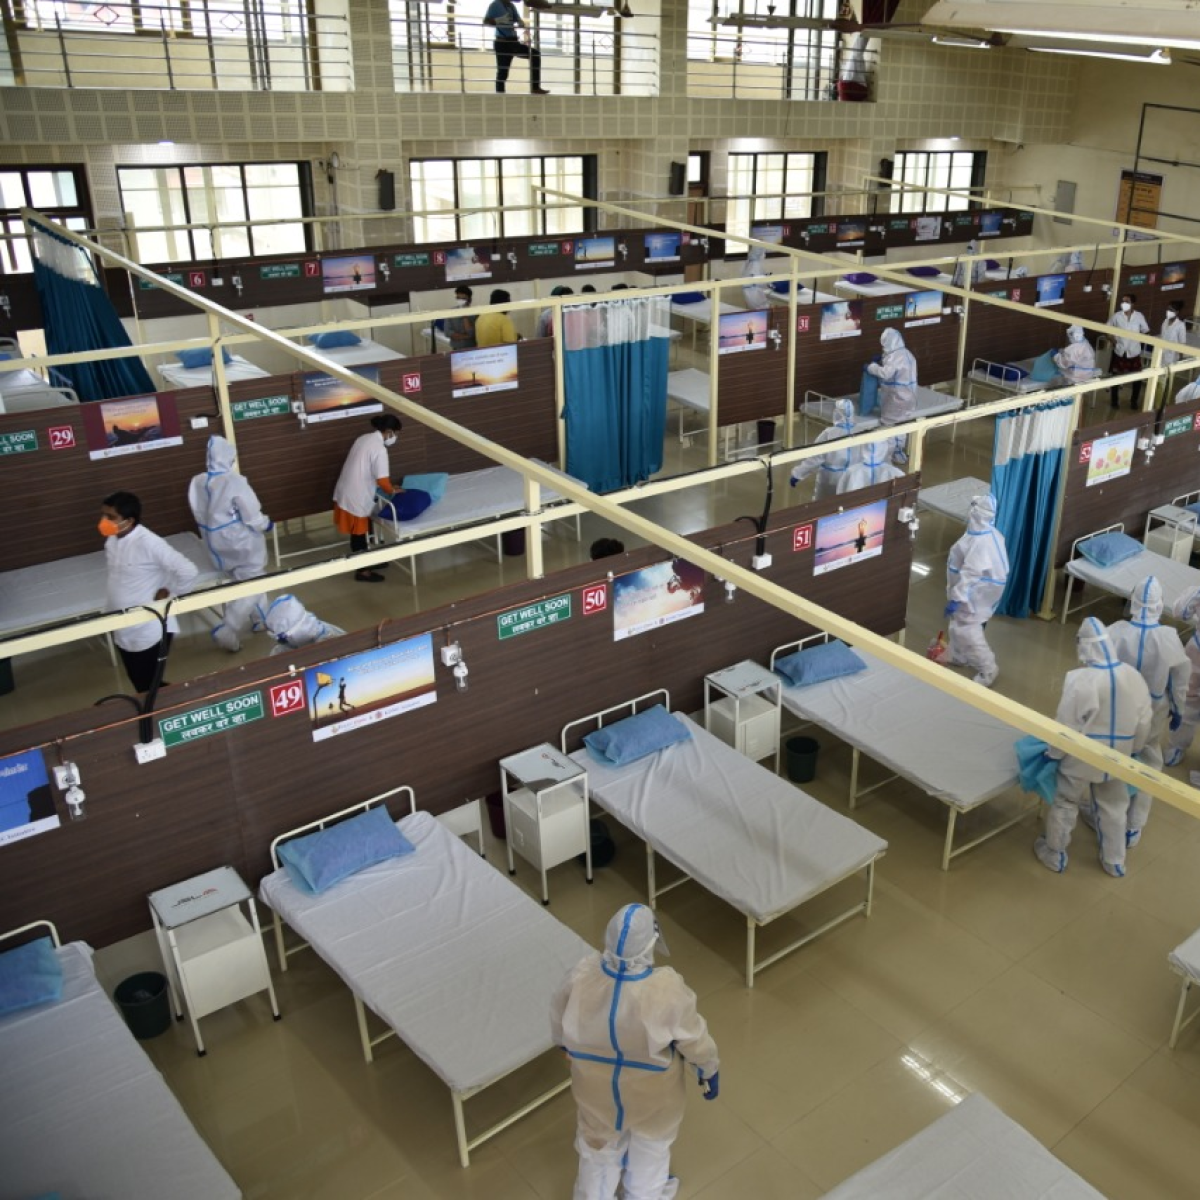 COVID care center patients protest in Maharashtra's Buldhana over delay in lunch